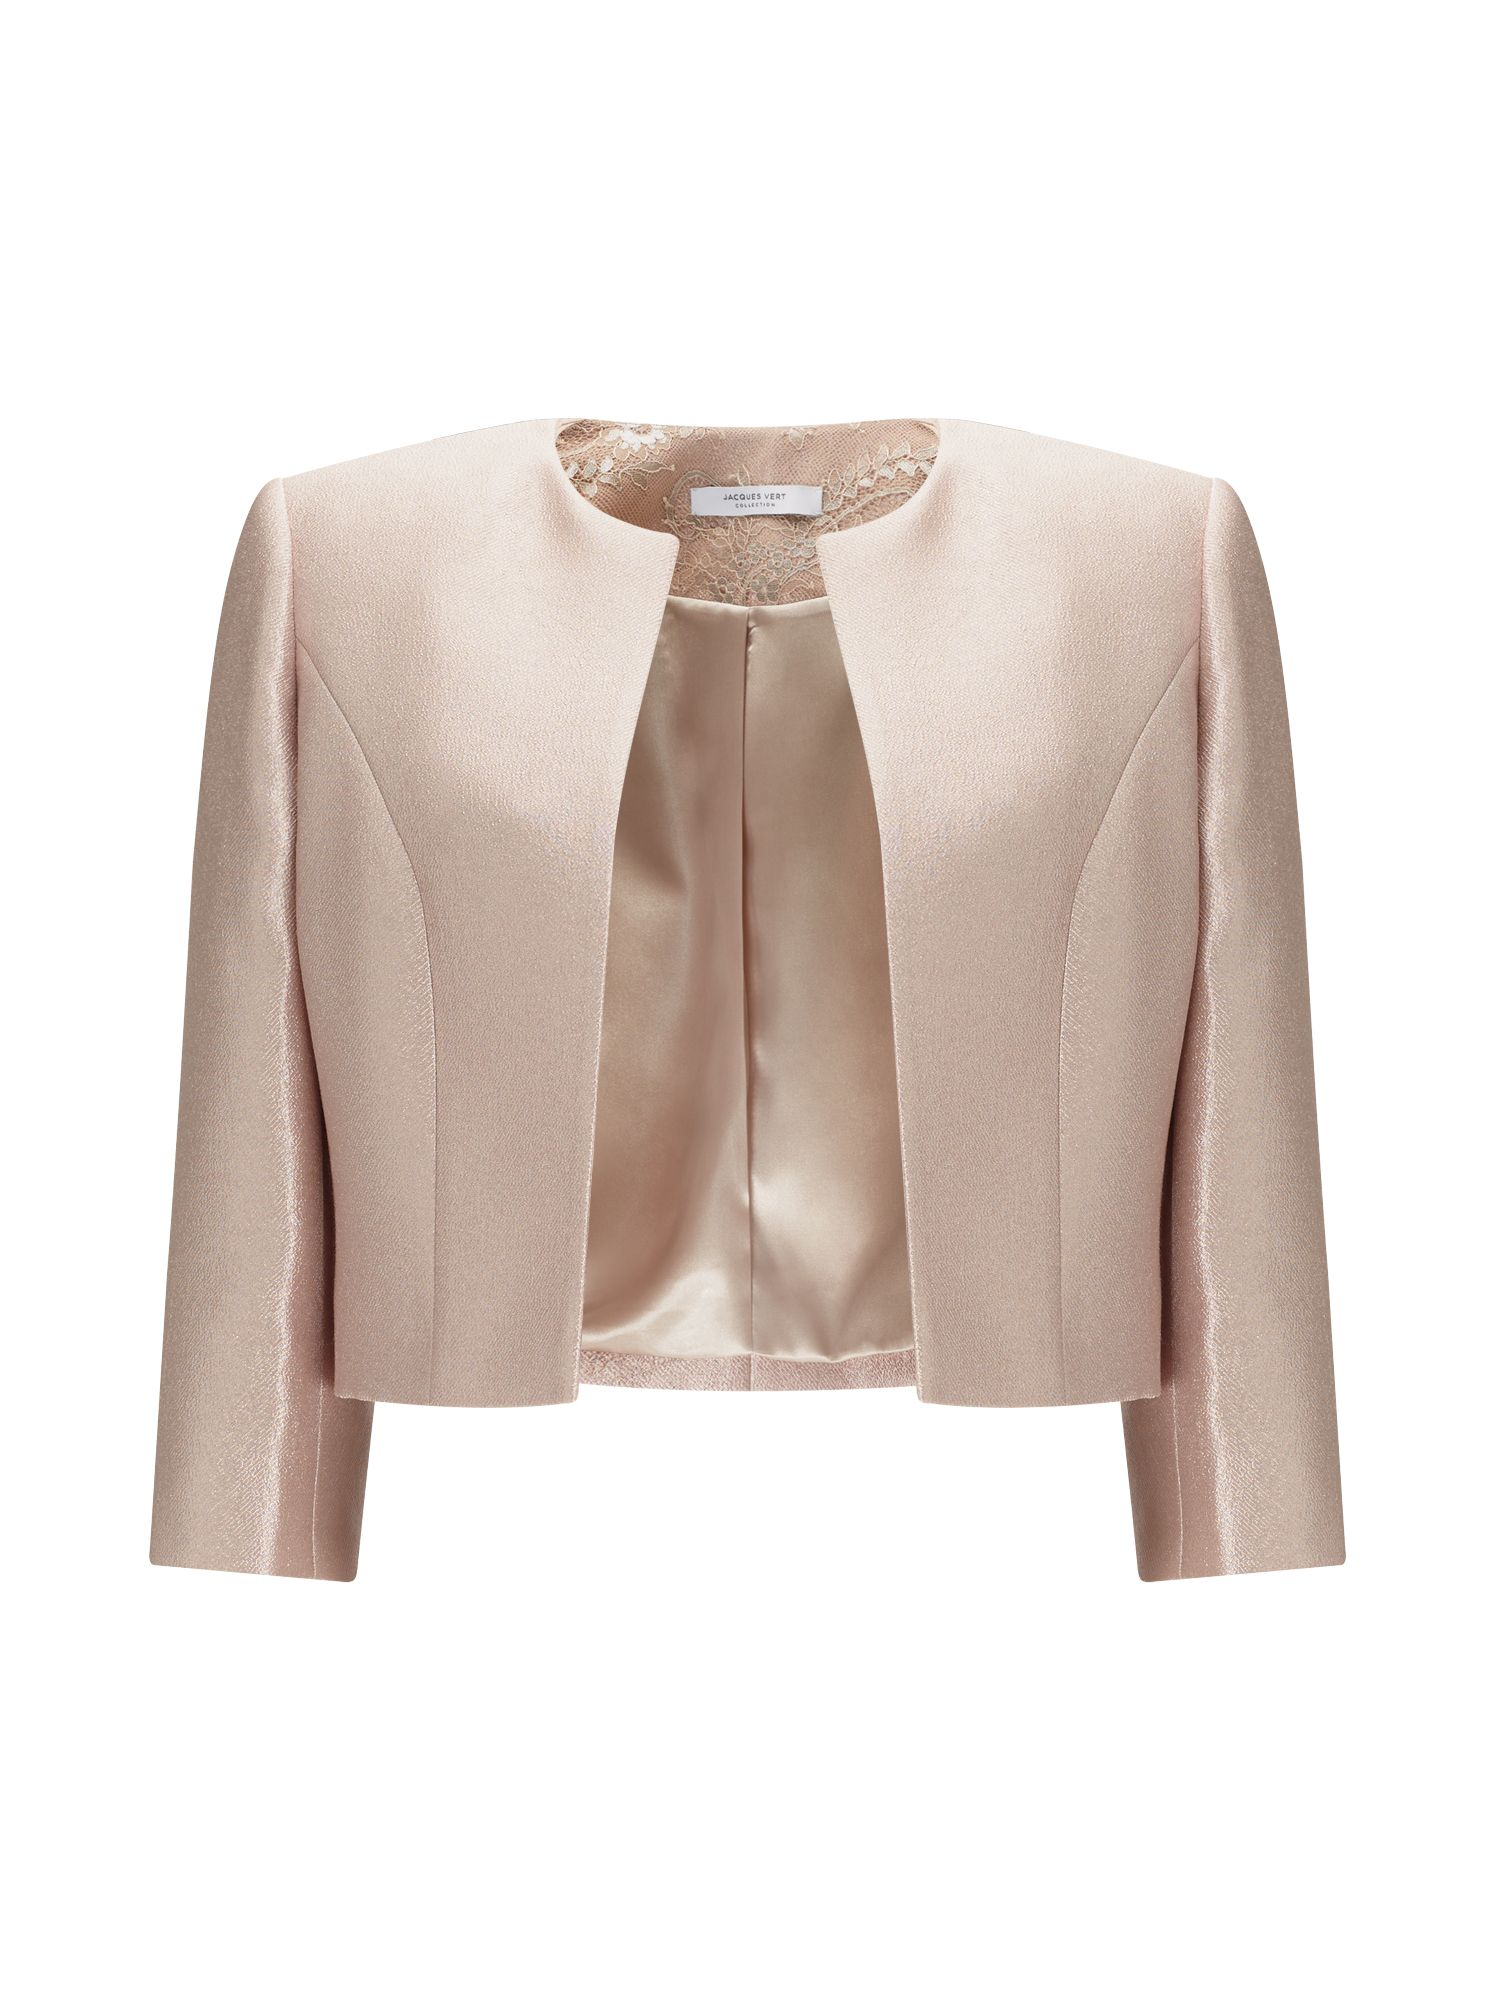 Jacques Vert Tamara Textured Jacket, Light Pink